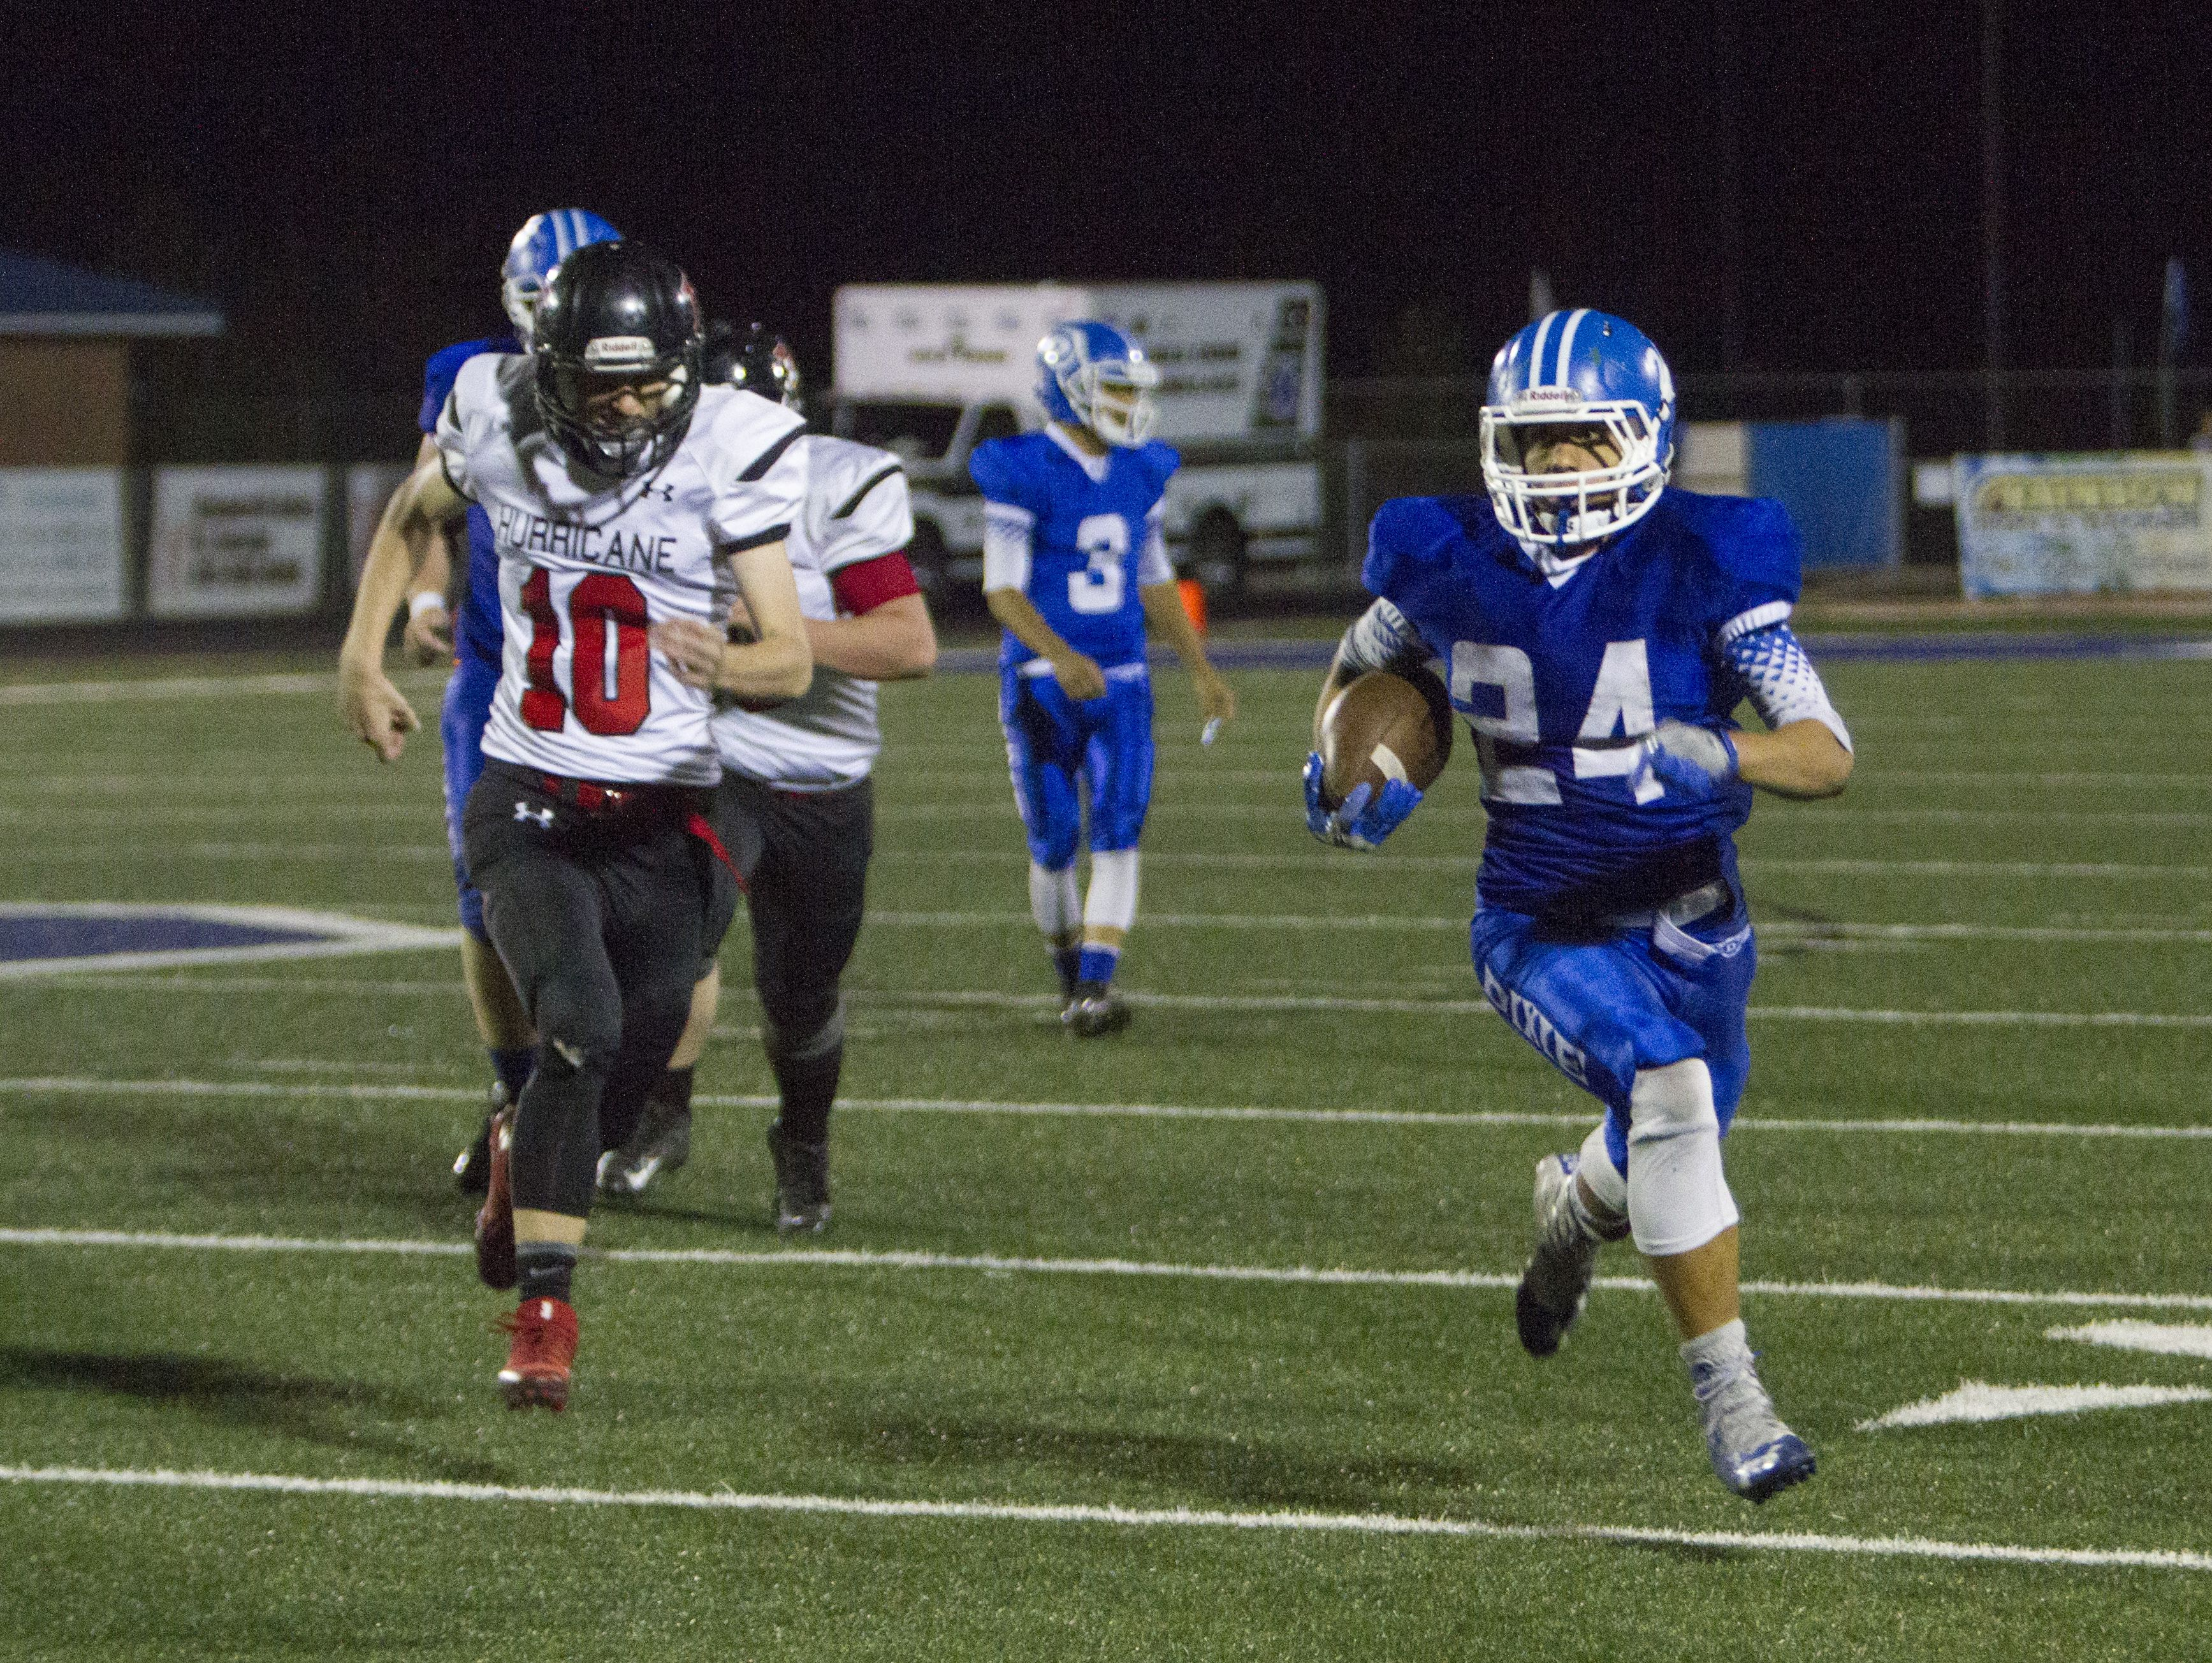 Dixie High football claims 42-14 victory over Hurricane High School Friday, Oct. 21, 2016.